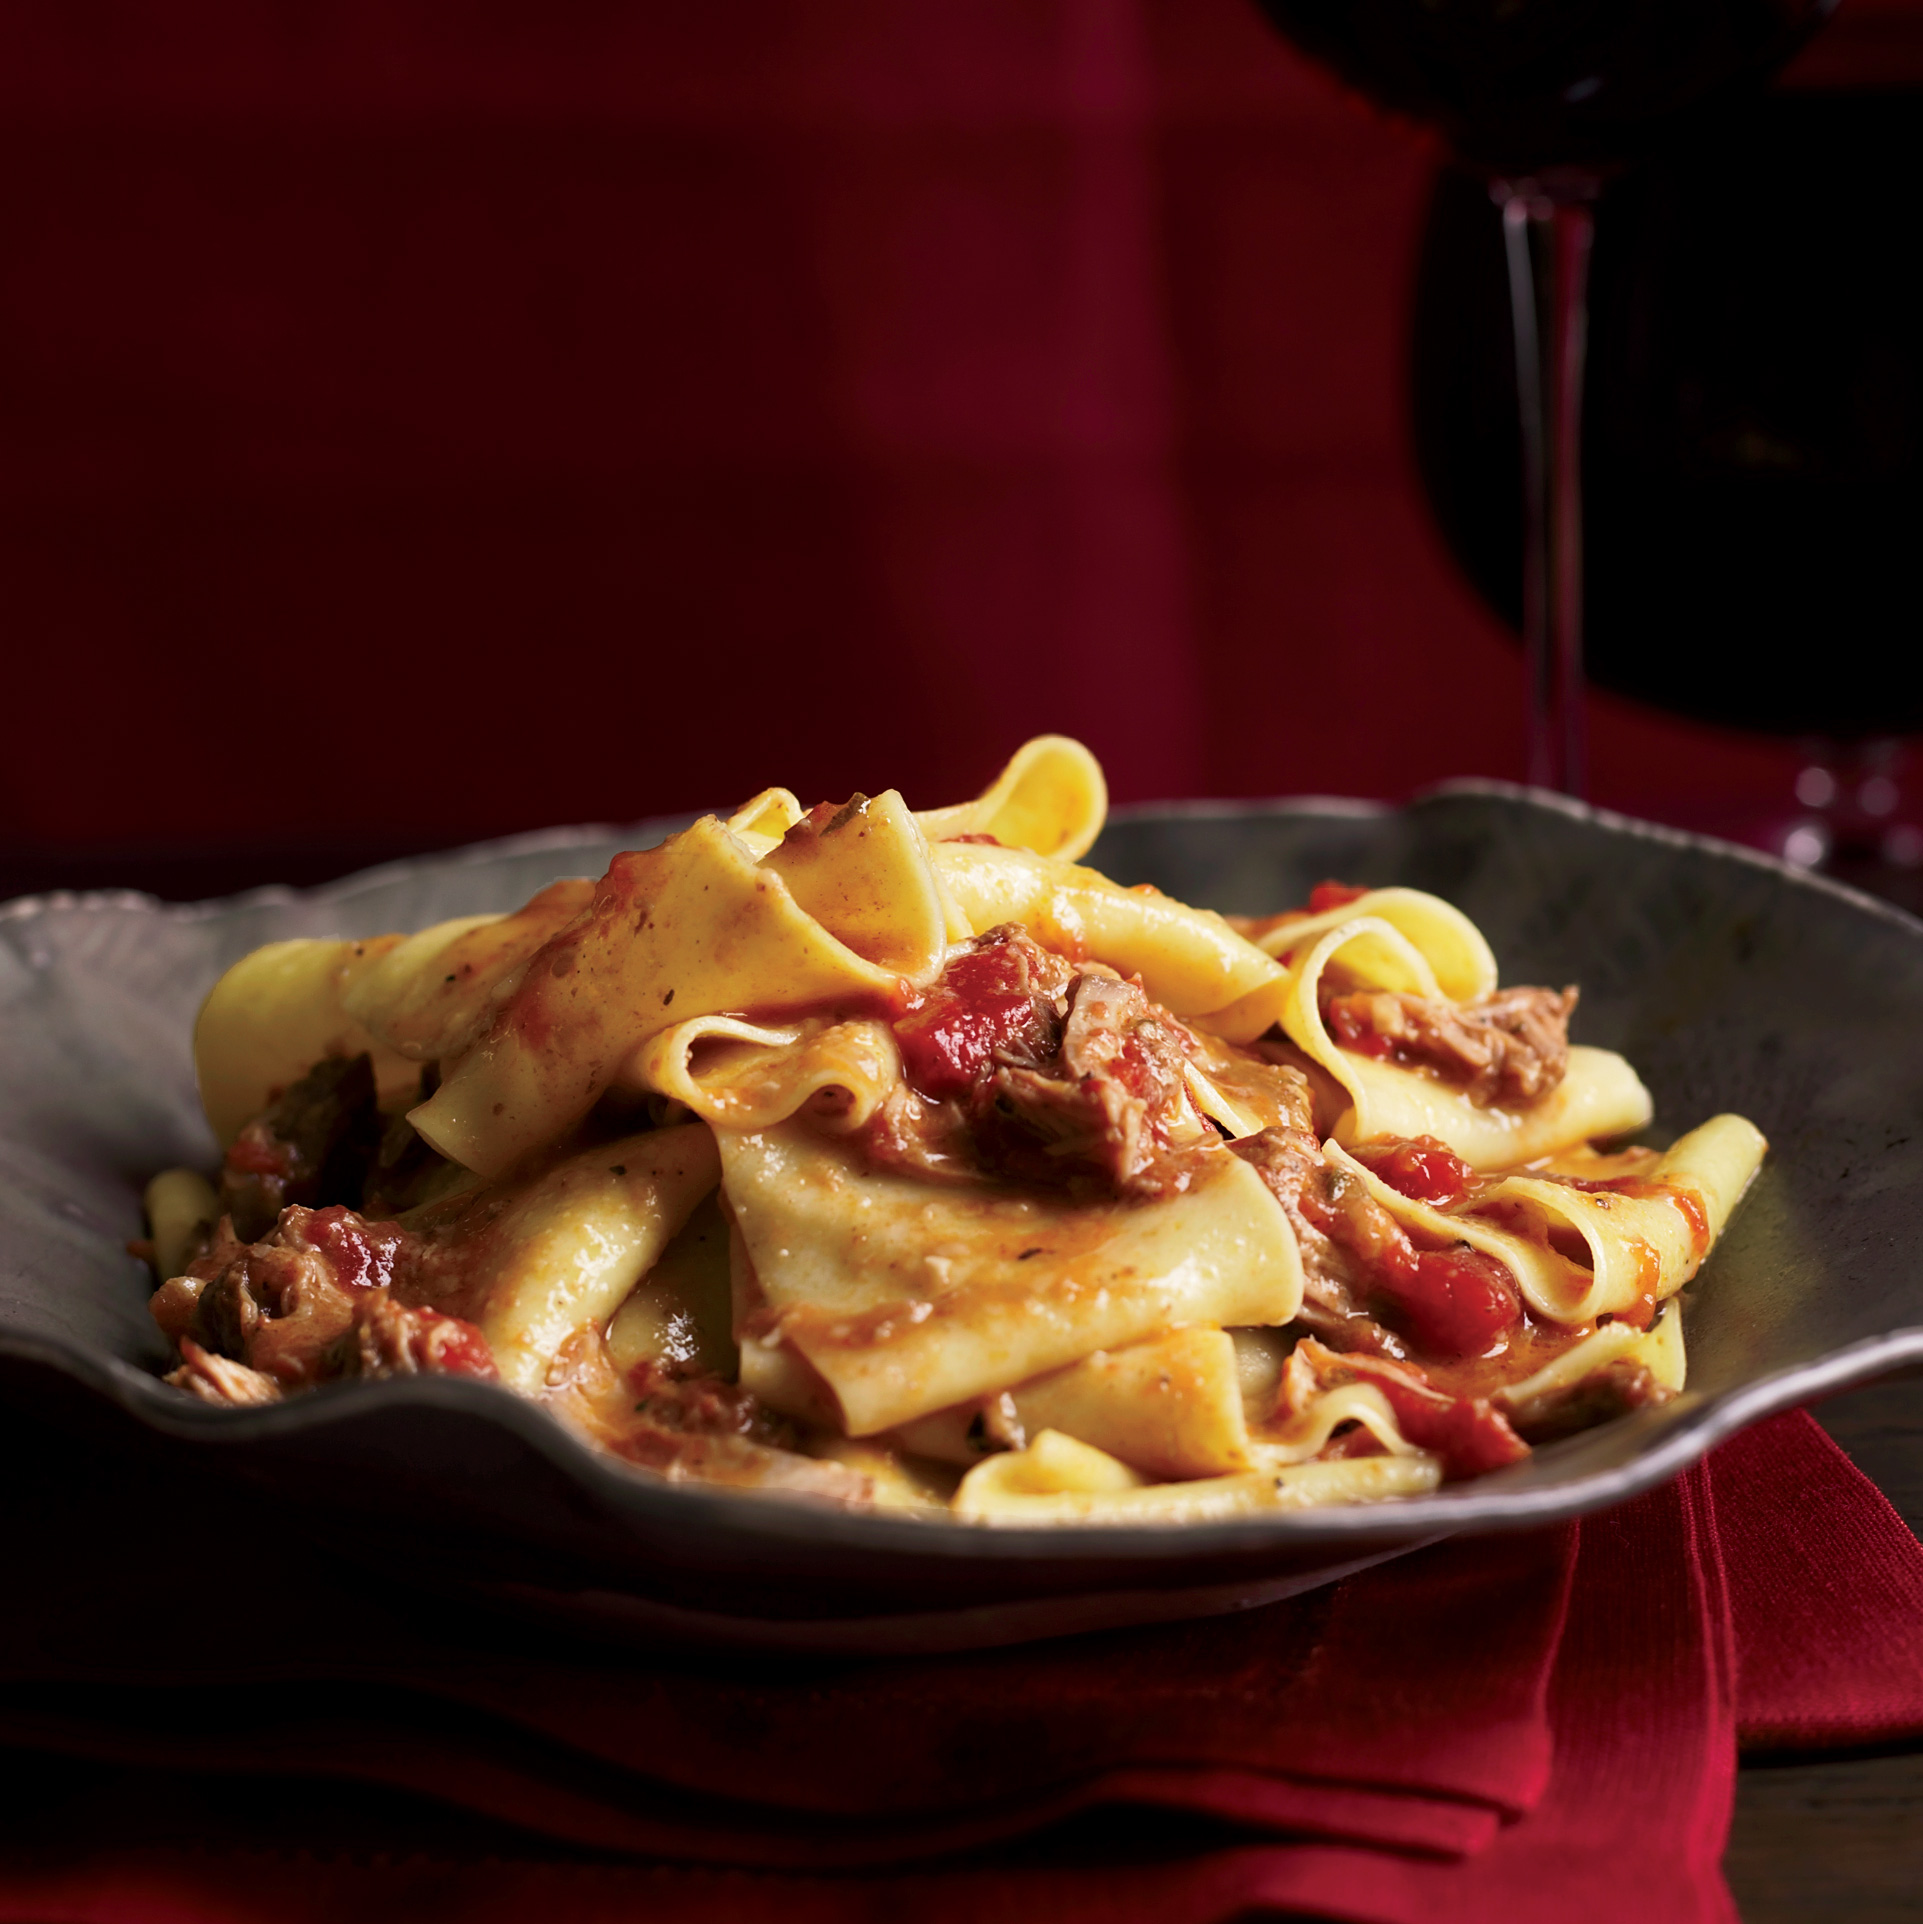 200910-r-pappardelle-veal.jpg